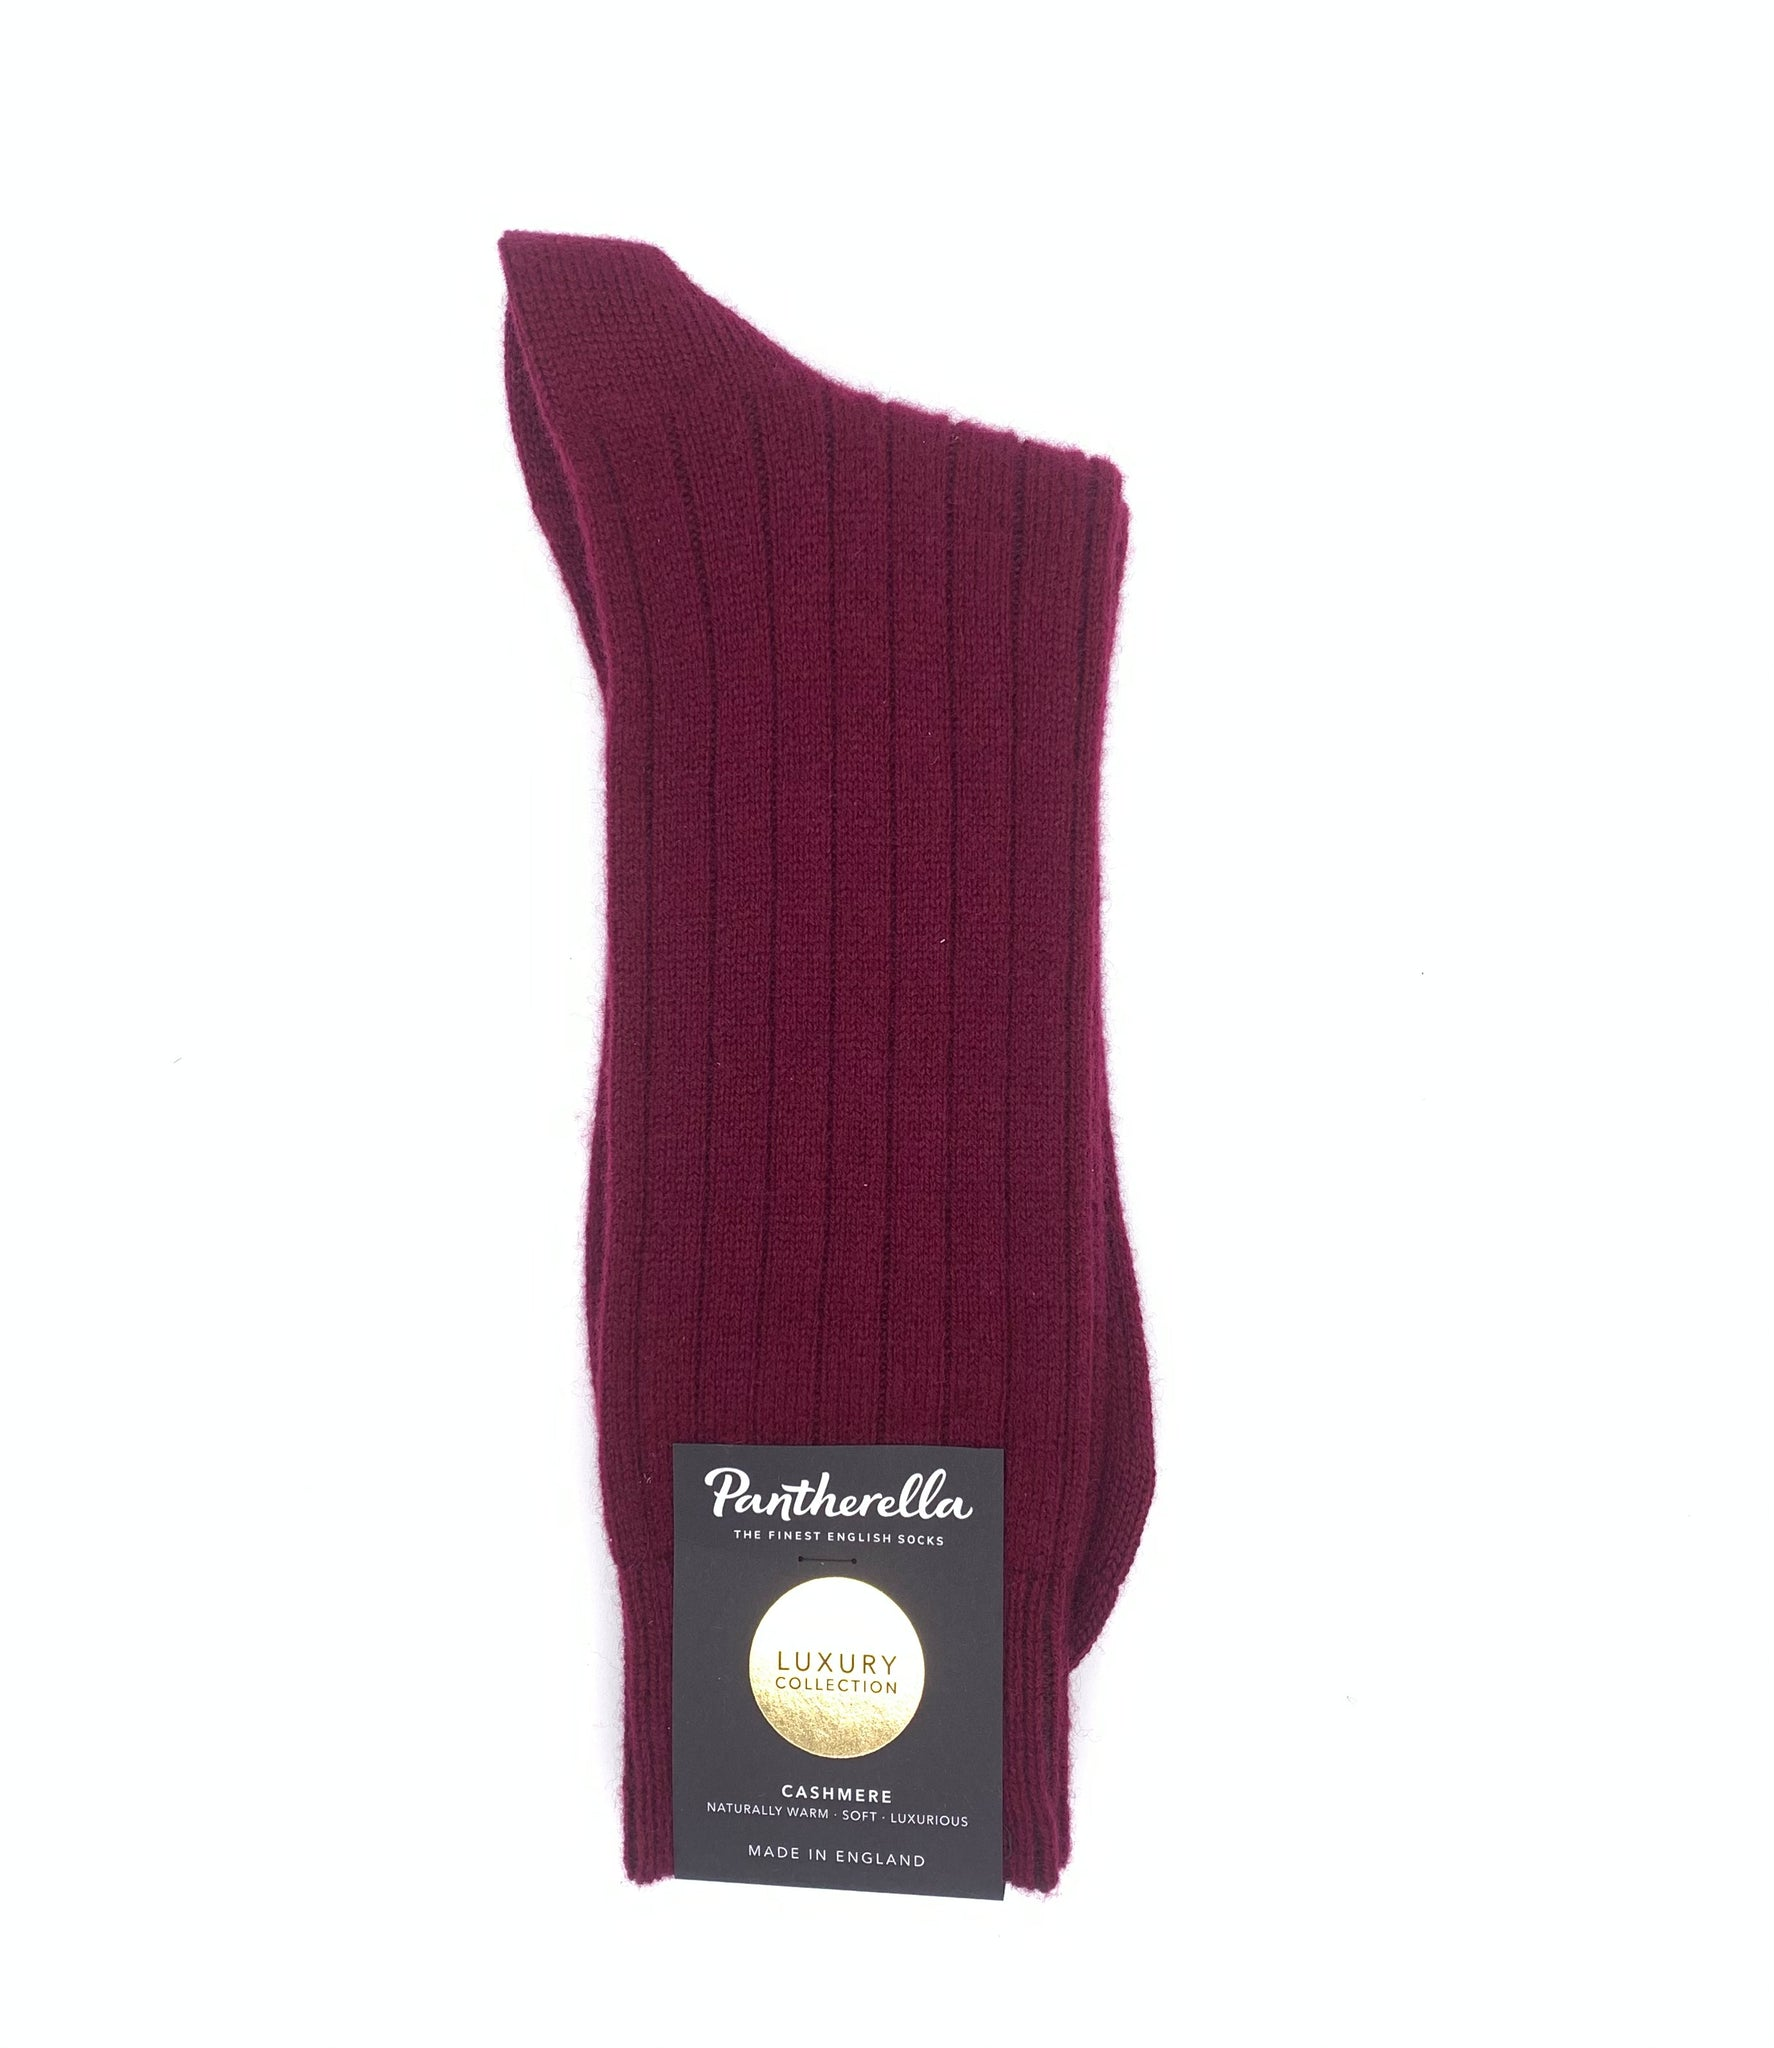 Supreme quality luxurious UK-made socks made with super-warm, super-soft highest quality cashmere from footwear royalty Pantherella, in a port red colour.